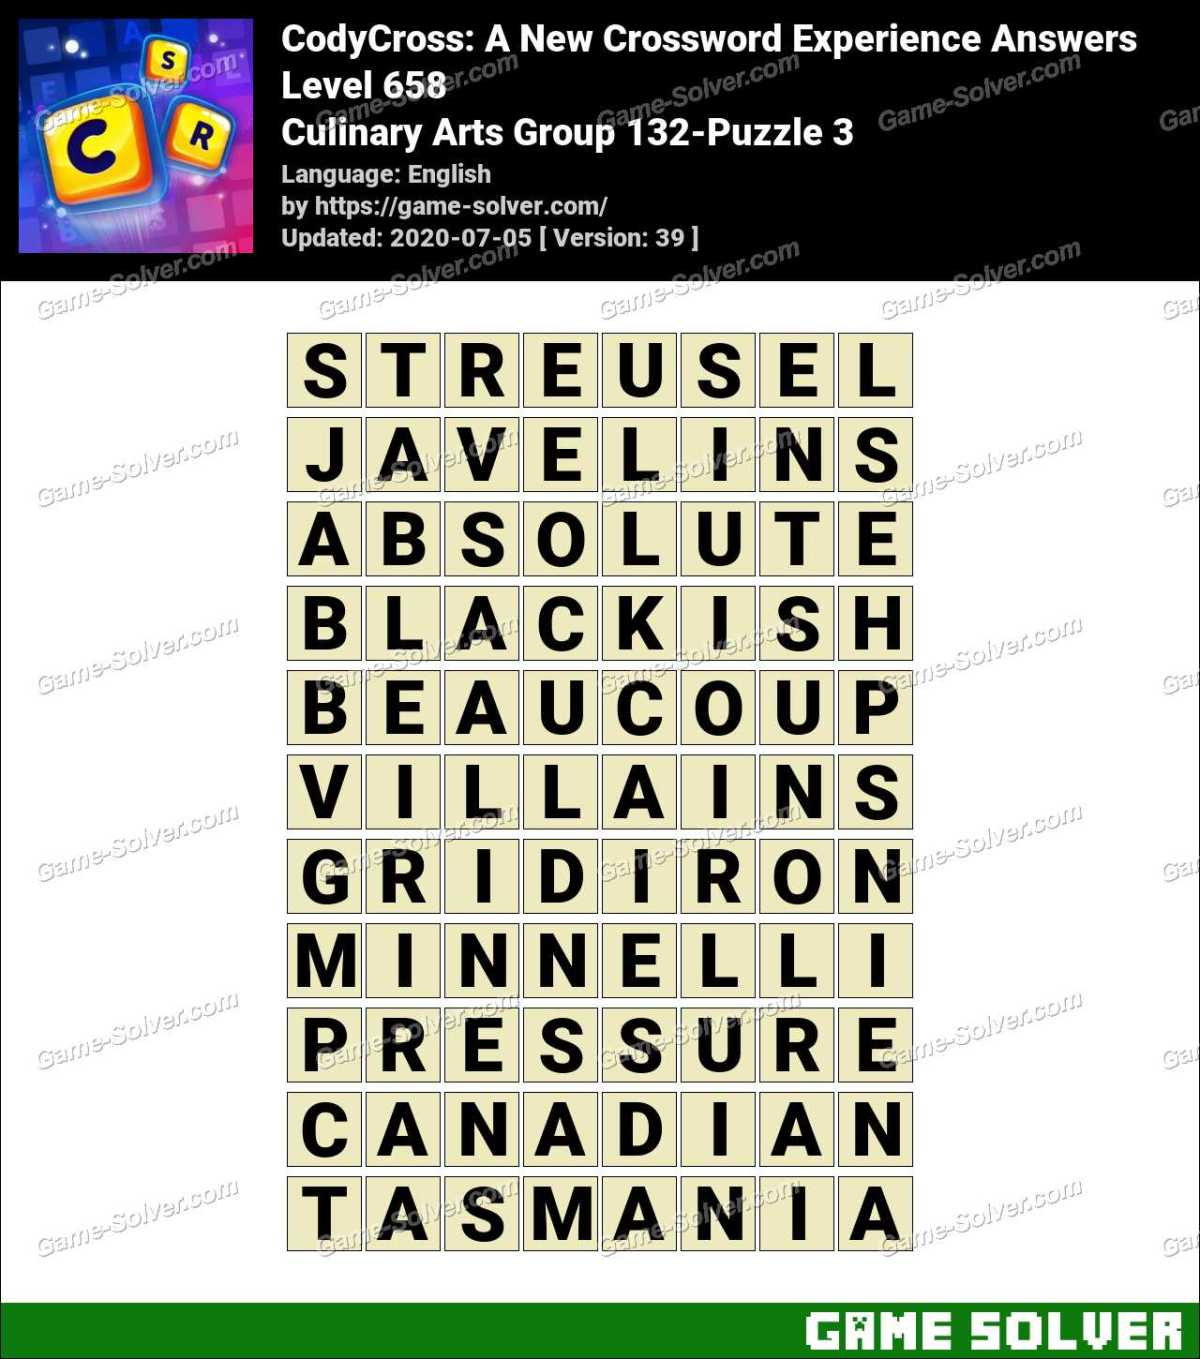 CodyCross Culinary Arts Group 132-Puzzle 3 Answers